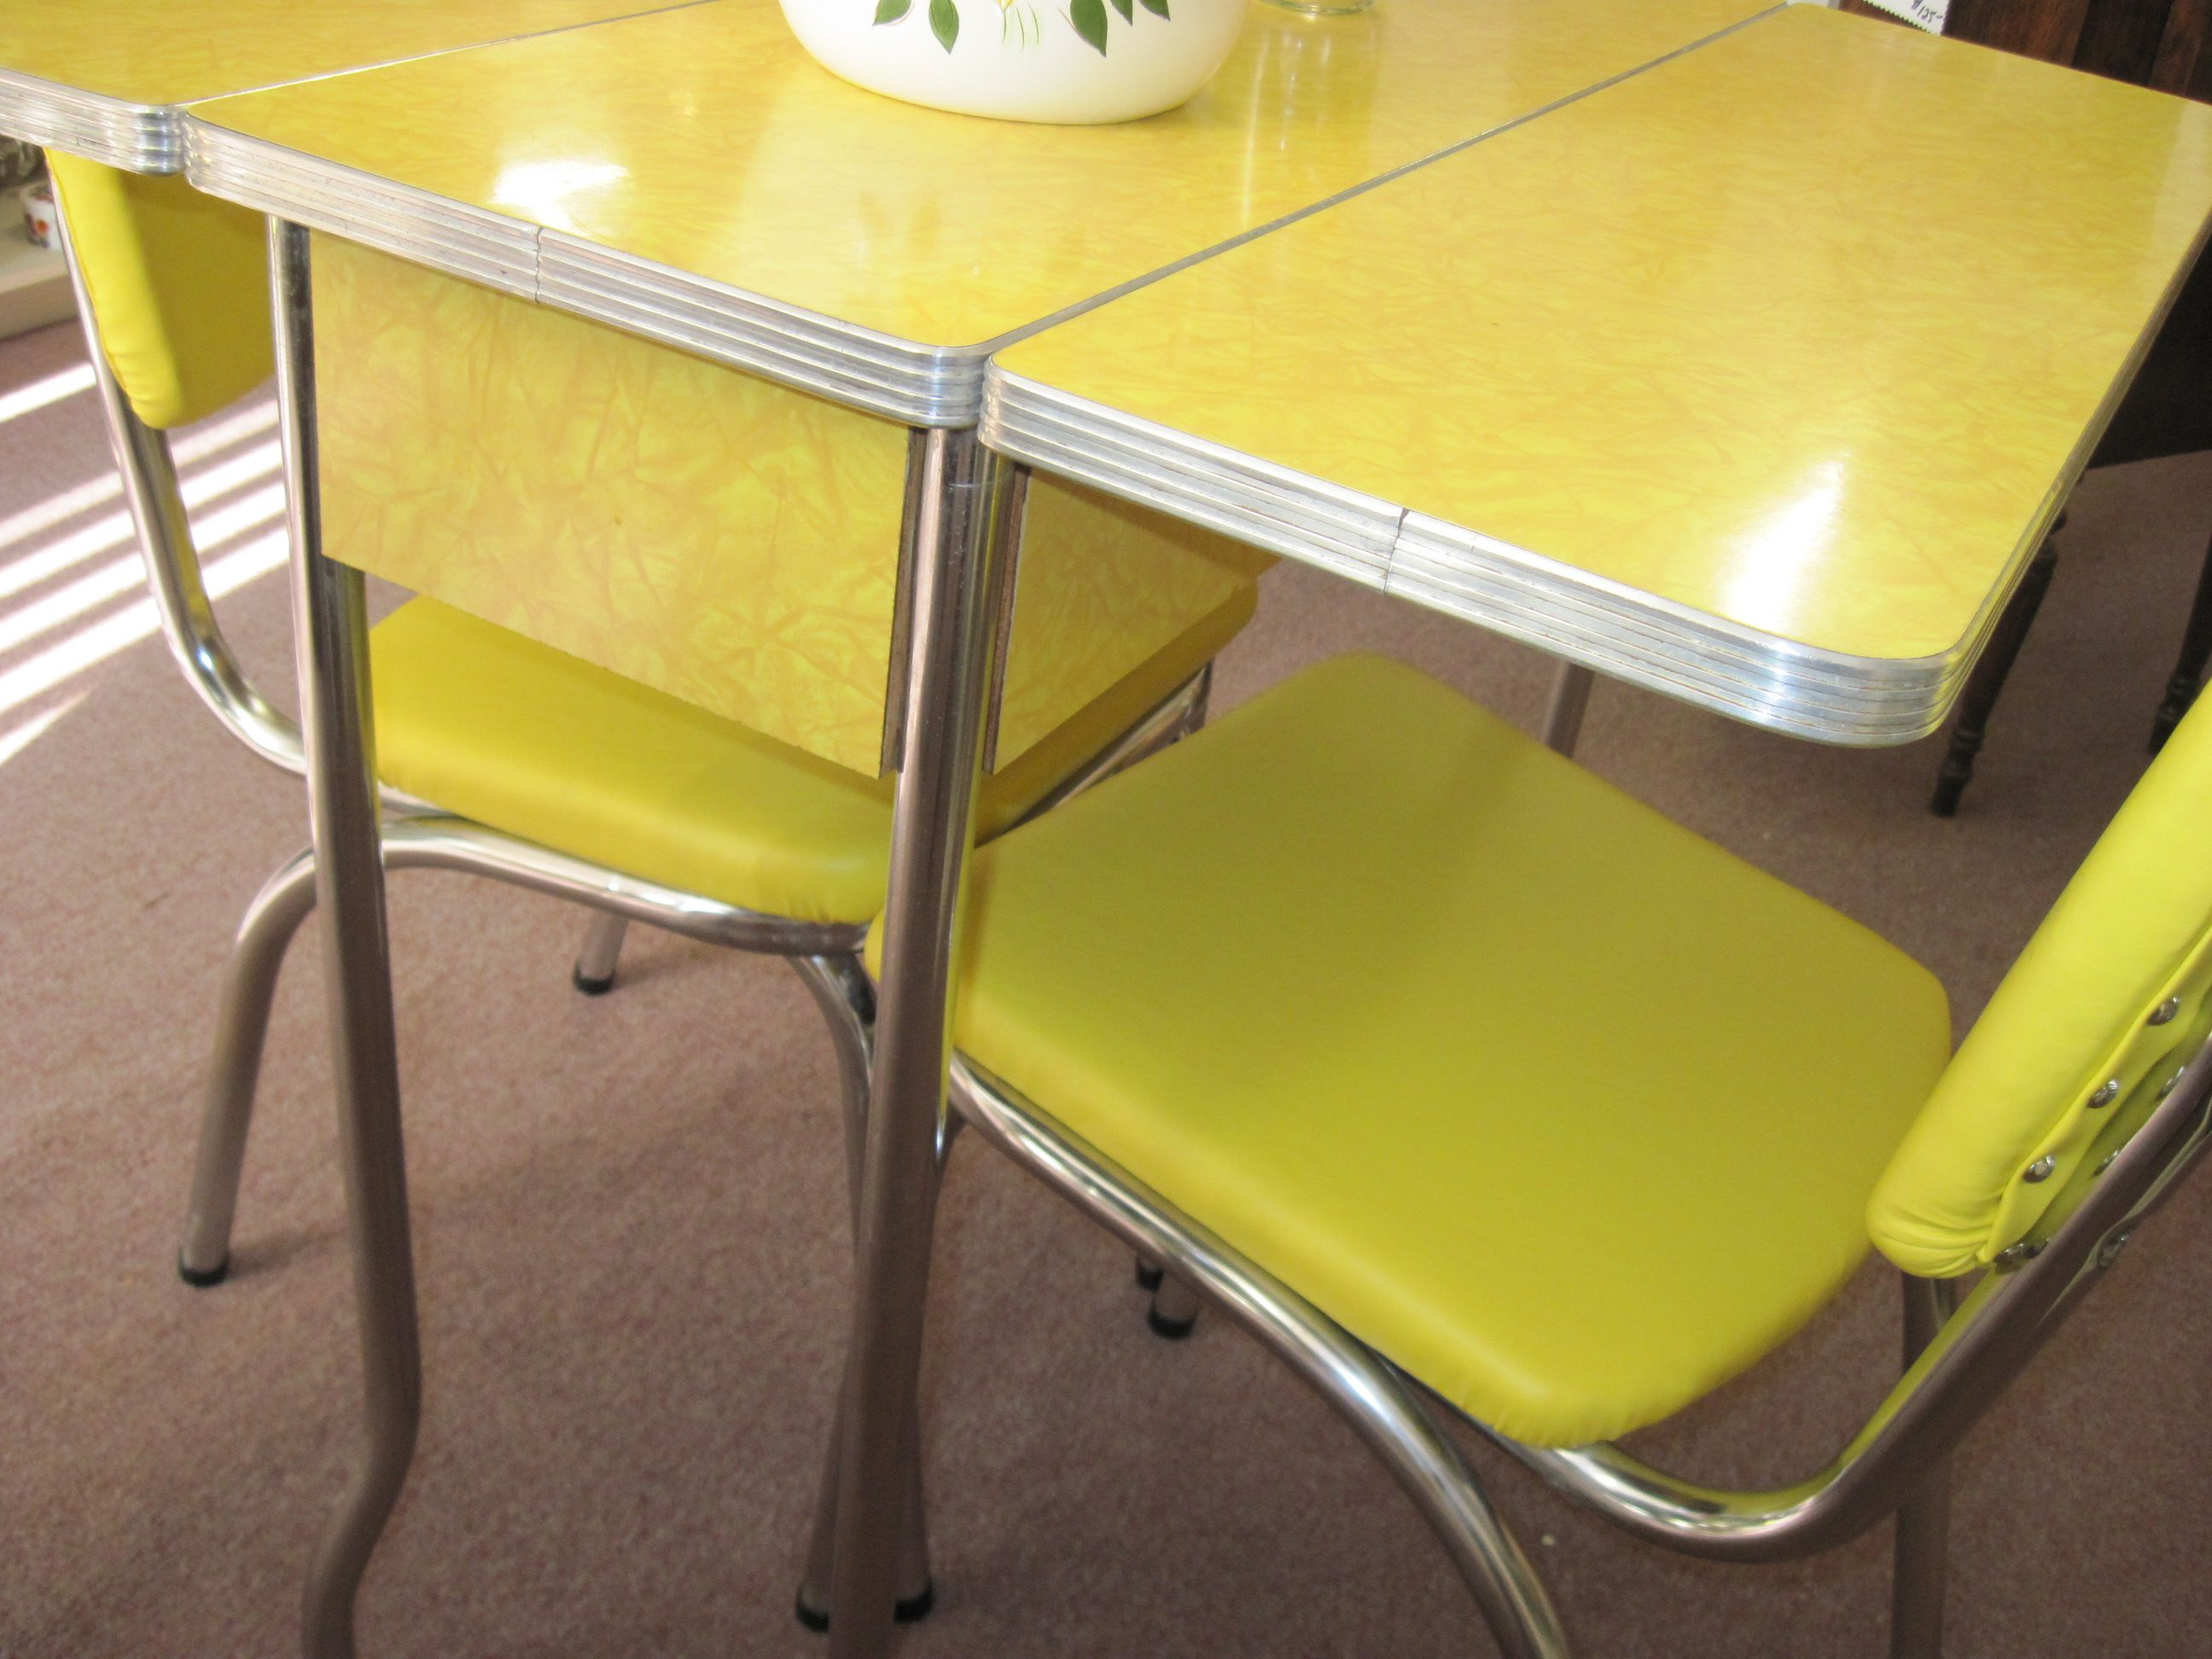 vintage kitchen tables retro drop leaf kitchen tables and chairs Yellow s Cracked Ice Formica Table